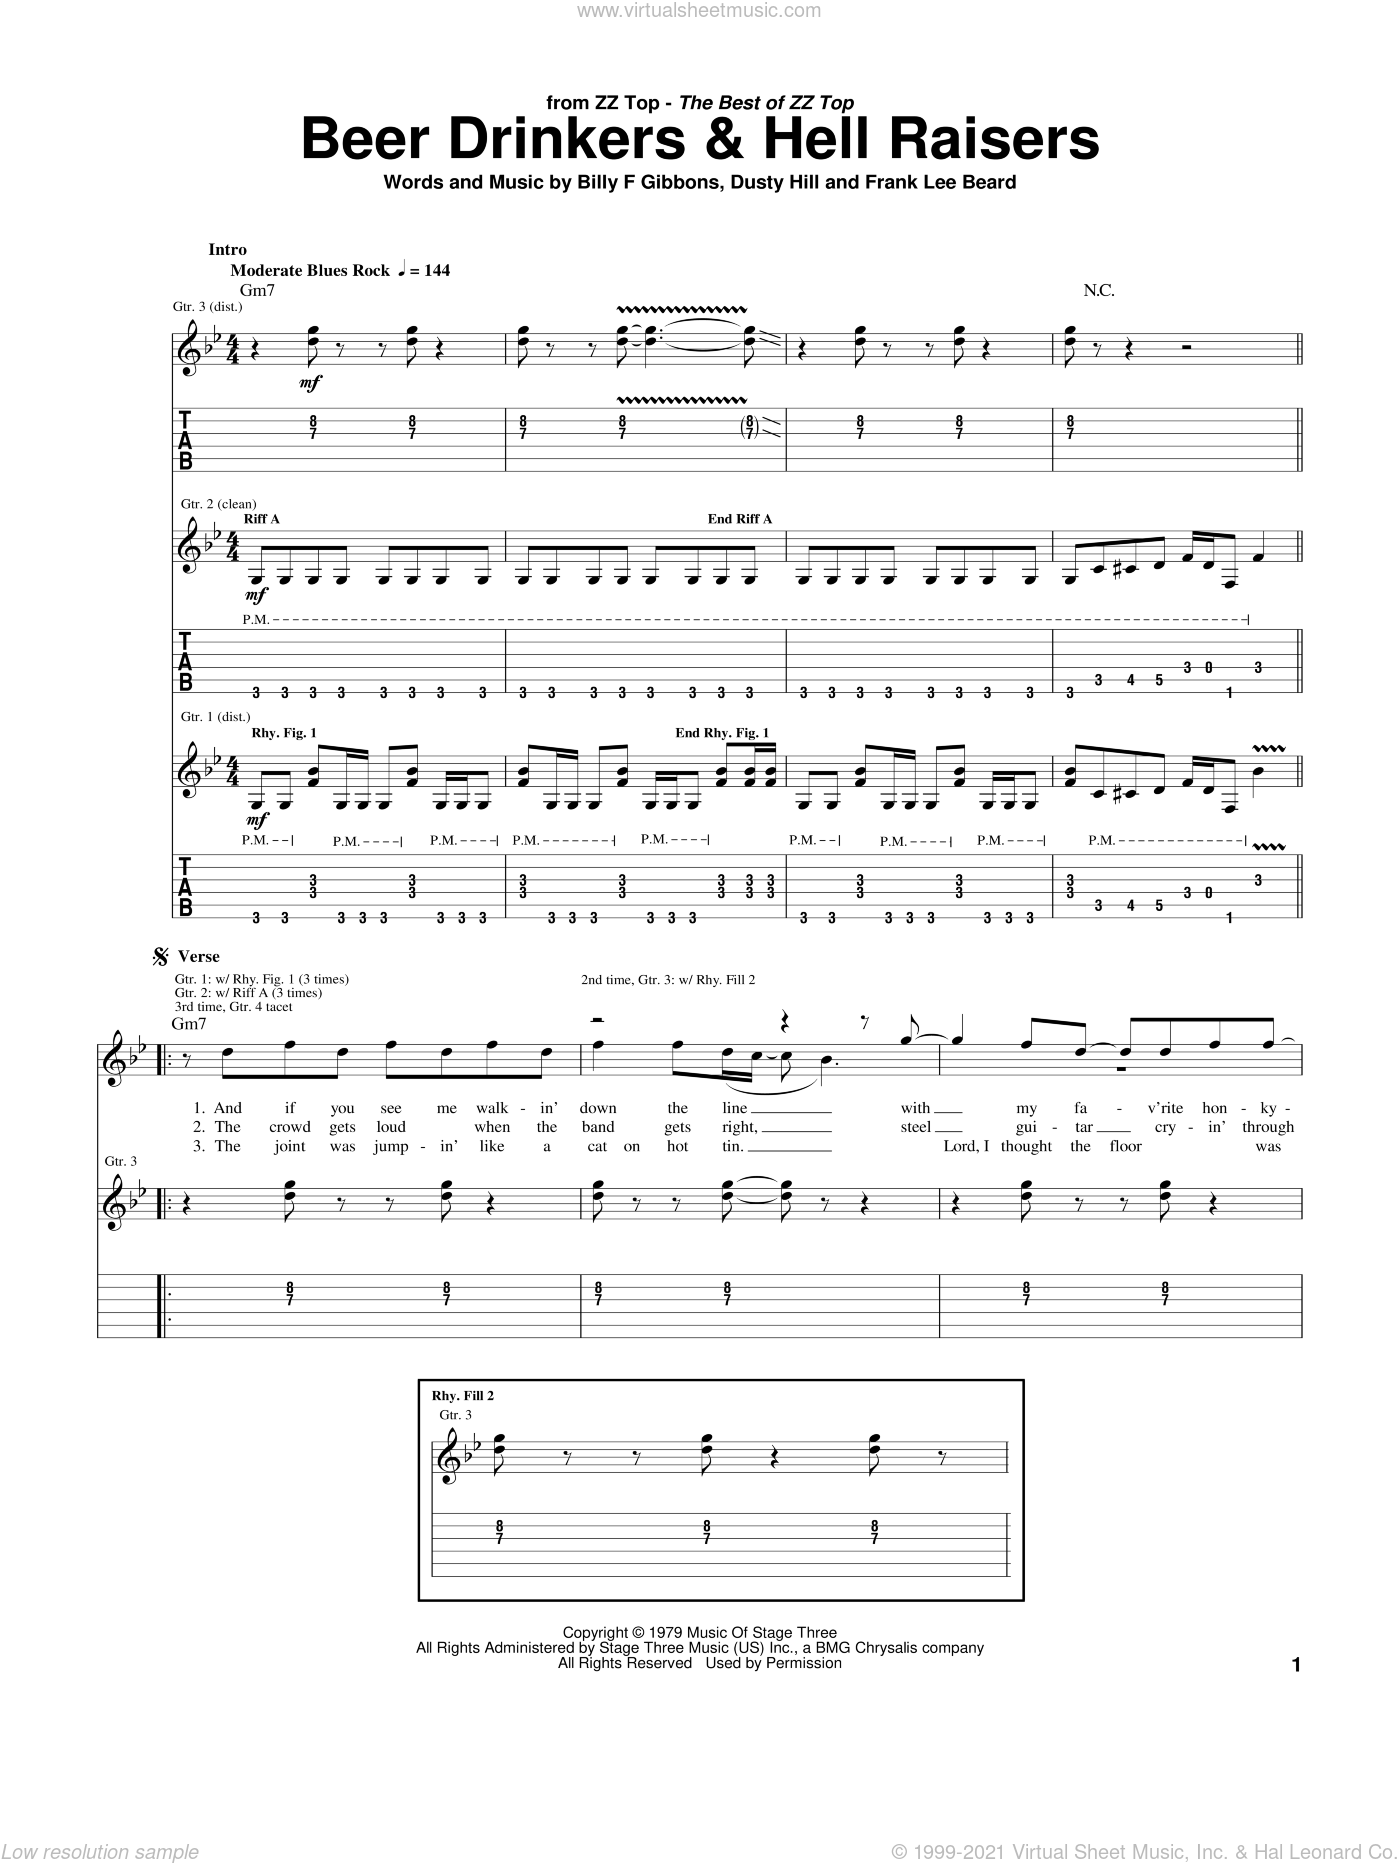 Beer Drinkers and Hell Raisers sheet music for guitar (tablature) by Frank Beard, ZZ Top, Billy Gibbons and Dusty Hill. Score Image Preview.